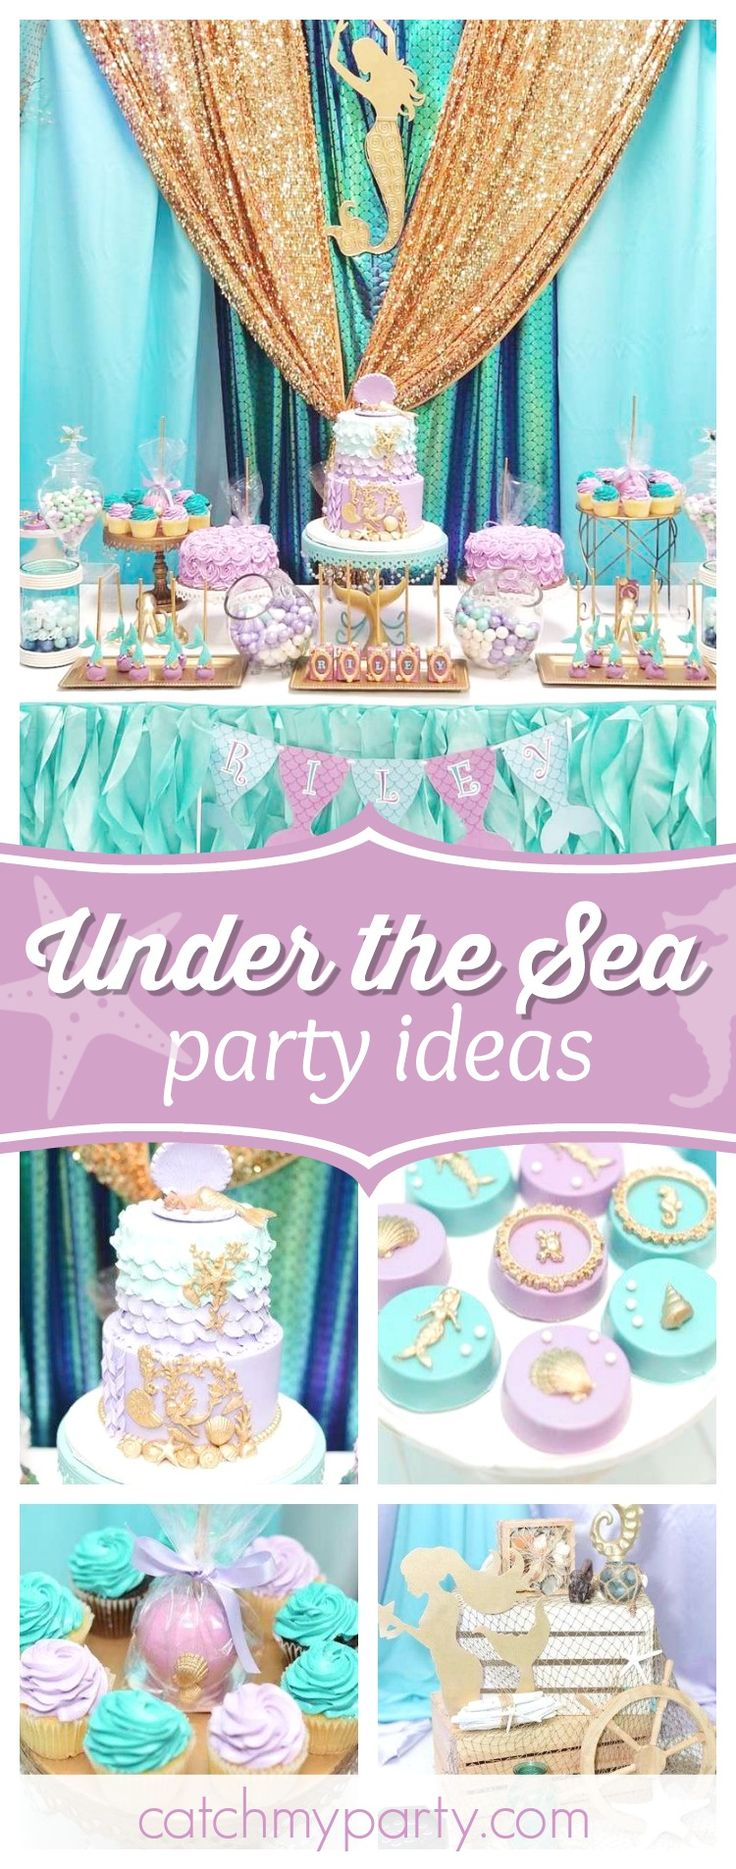 Take A Look At This Wonderful Under The Sea Baby Shower! The Cake Is Amazing